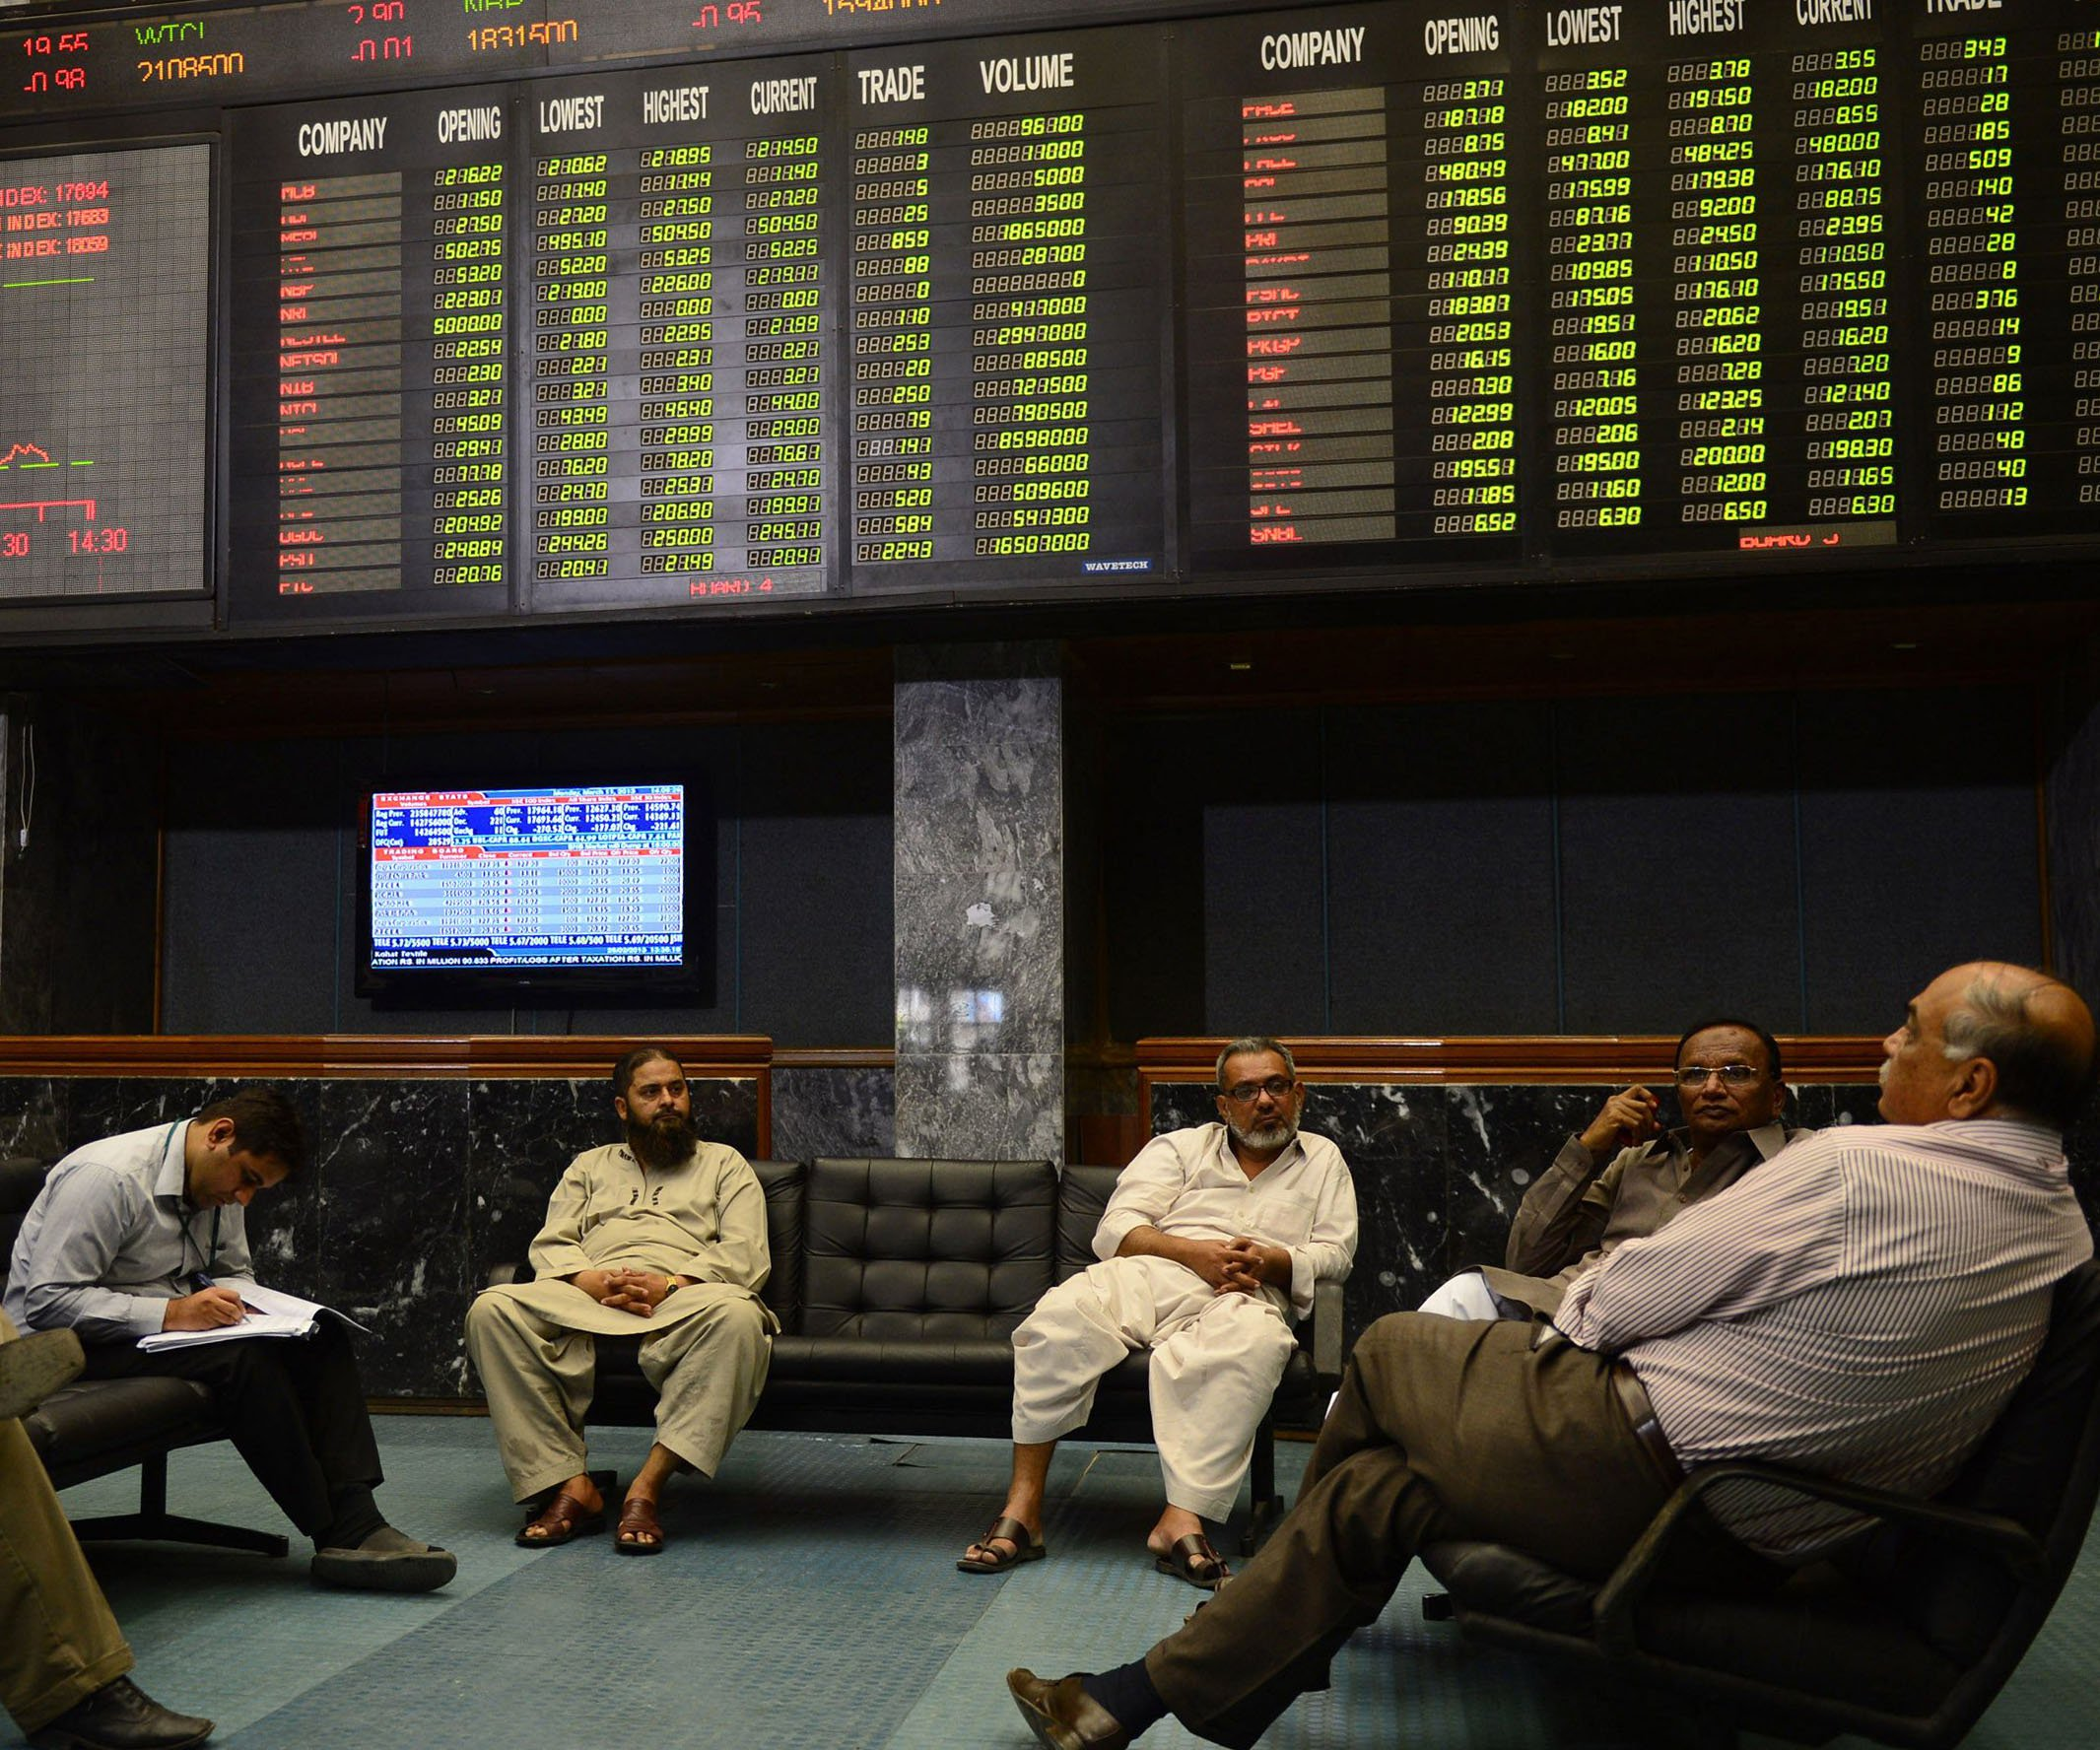 stock-market-kse-100-index-photo-afp-2-2-2-3-2-2-5-2-2